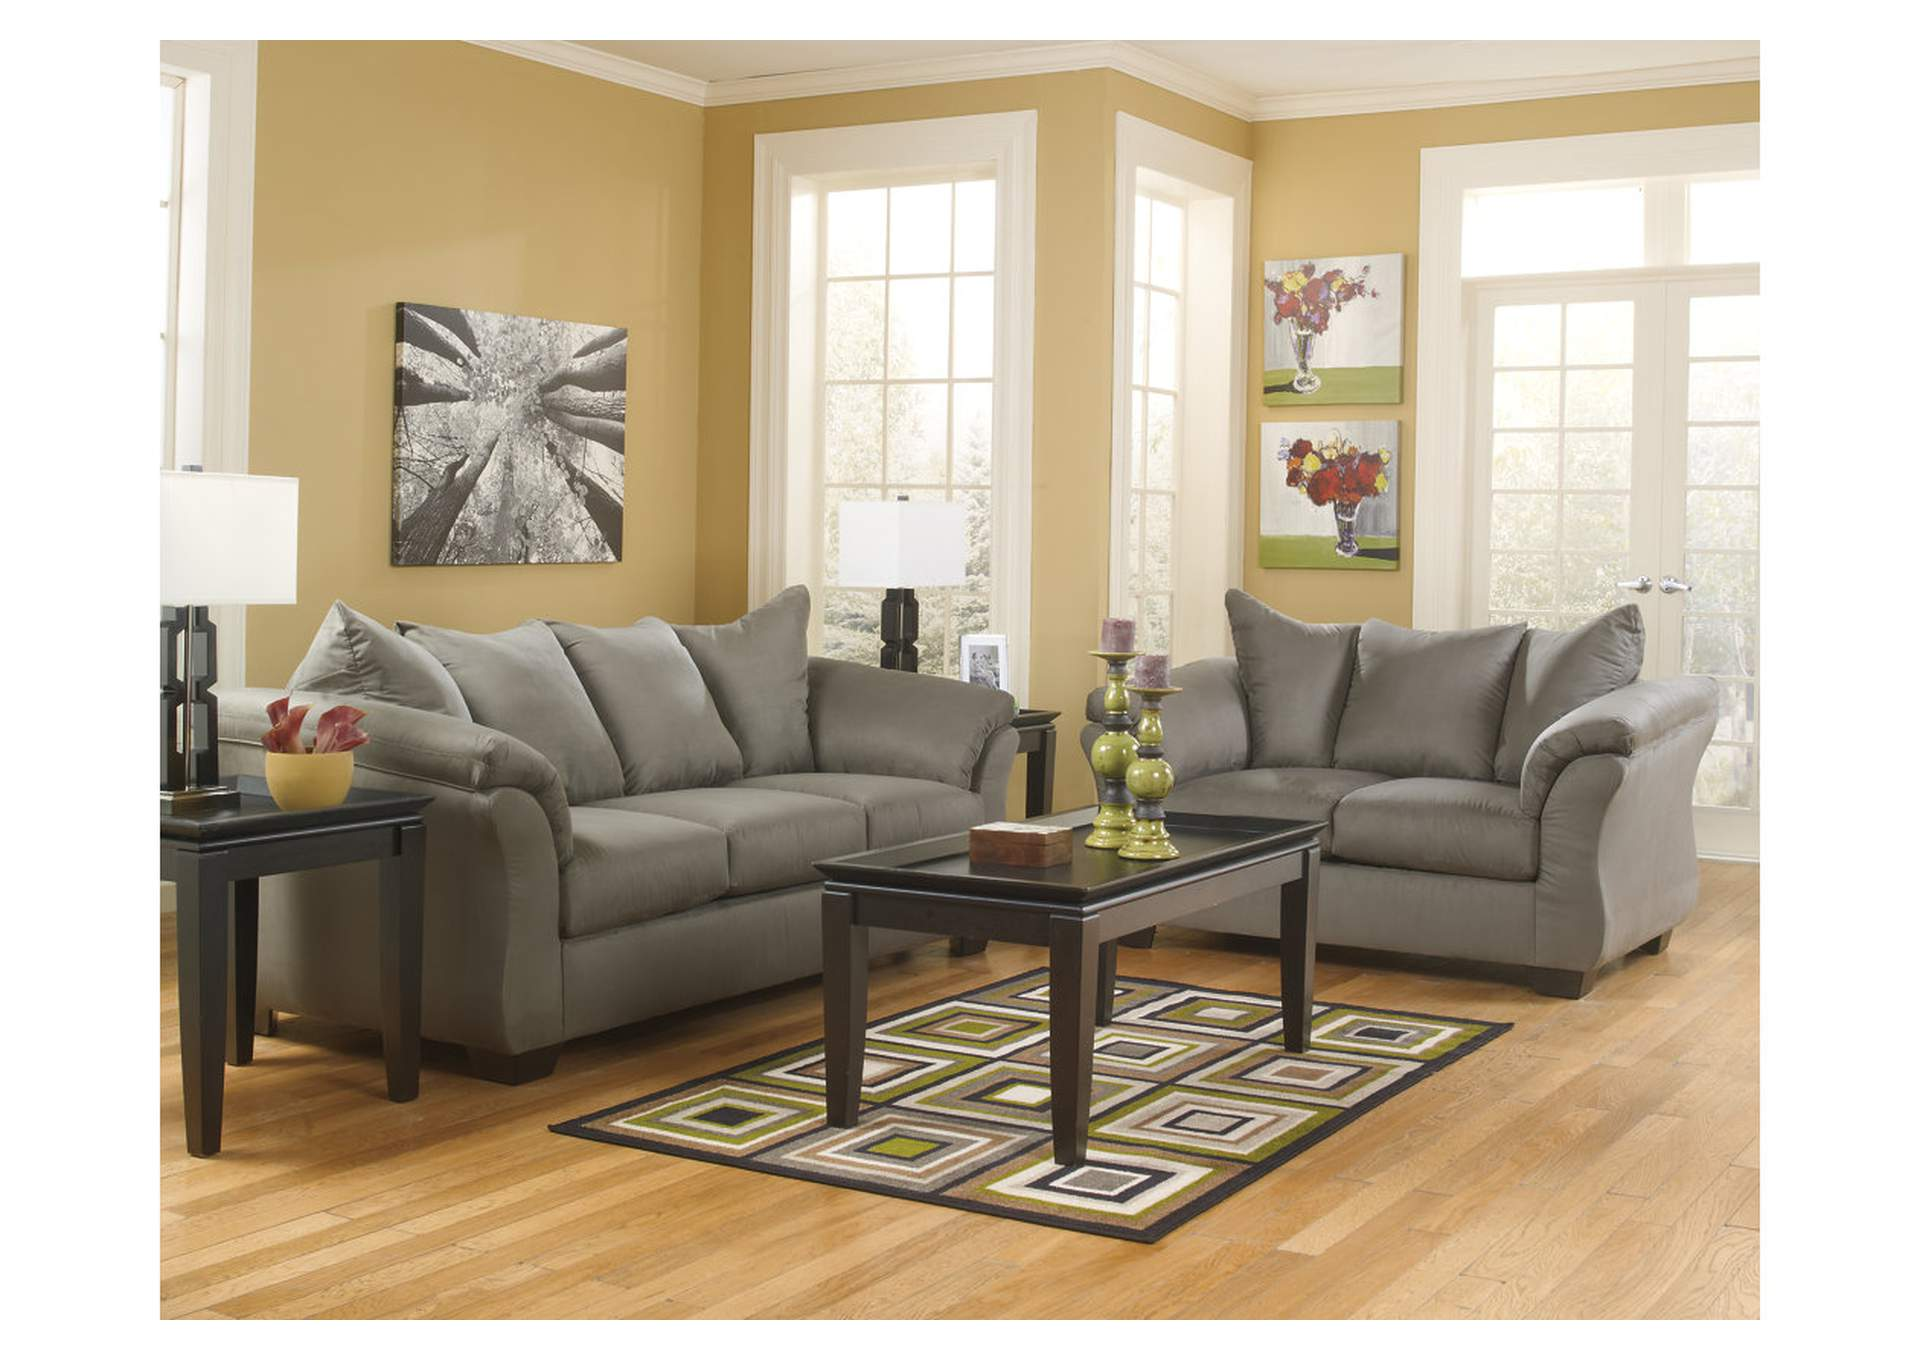 Darcy Cobblestone Sofa U0026 Loveseat,Signature Design By Ashley